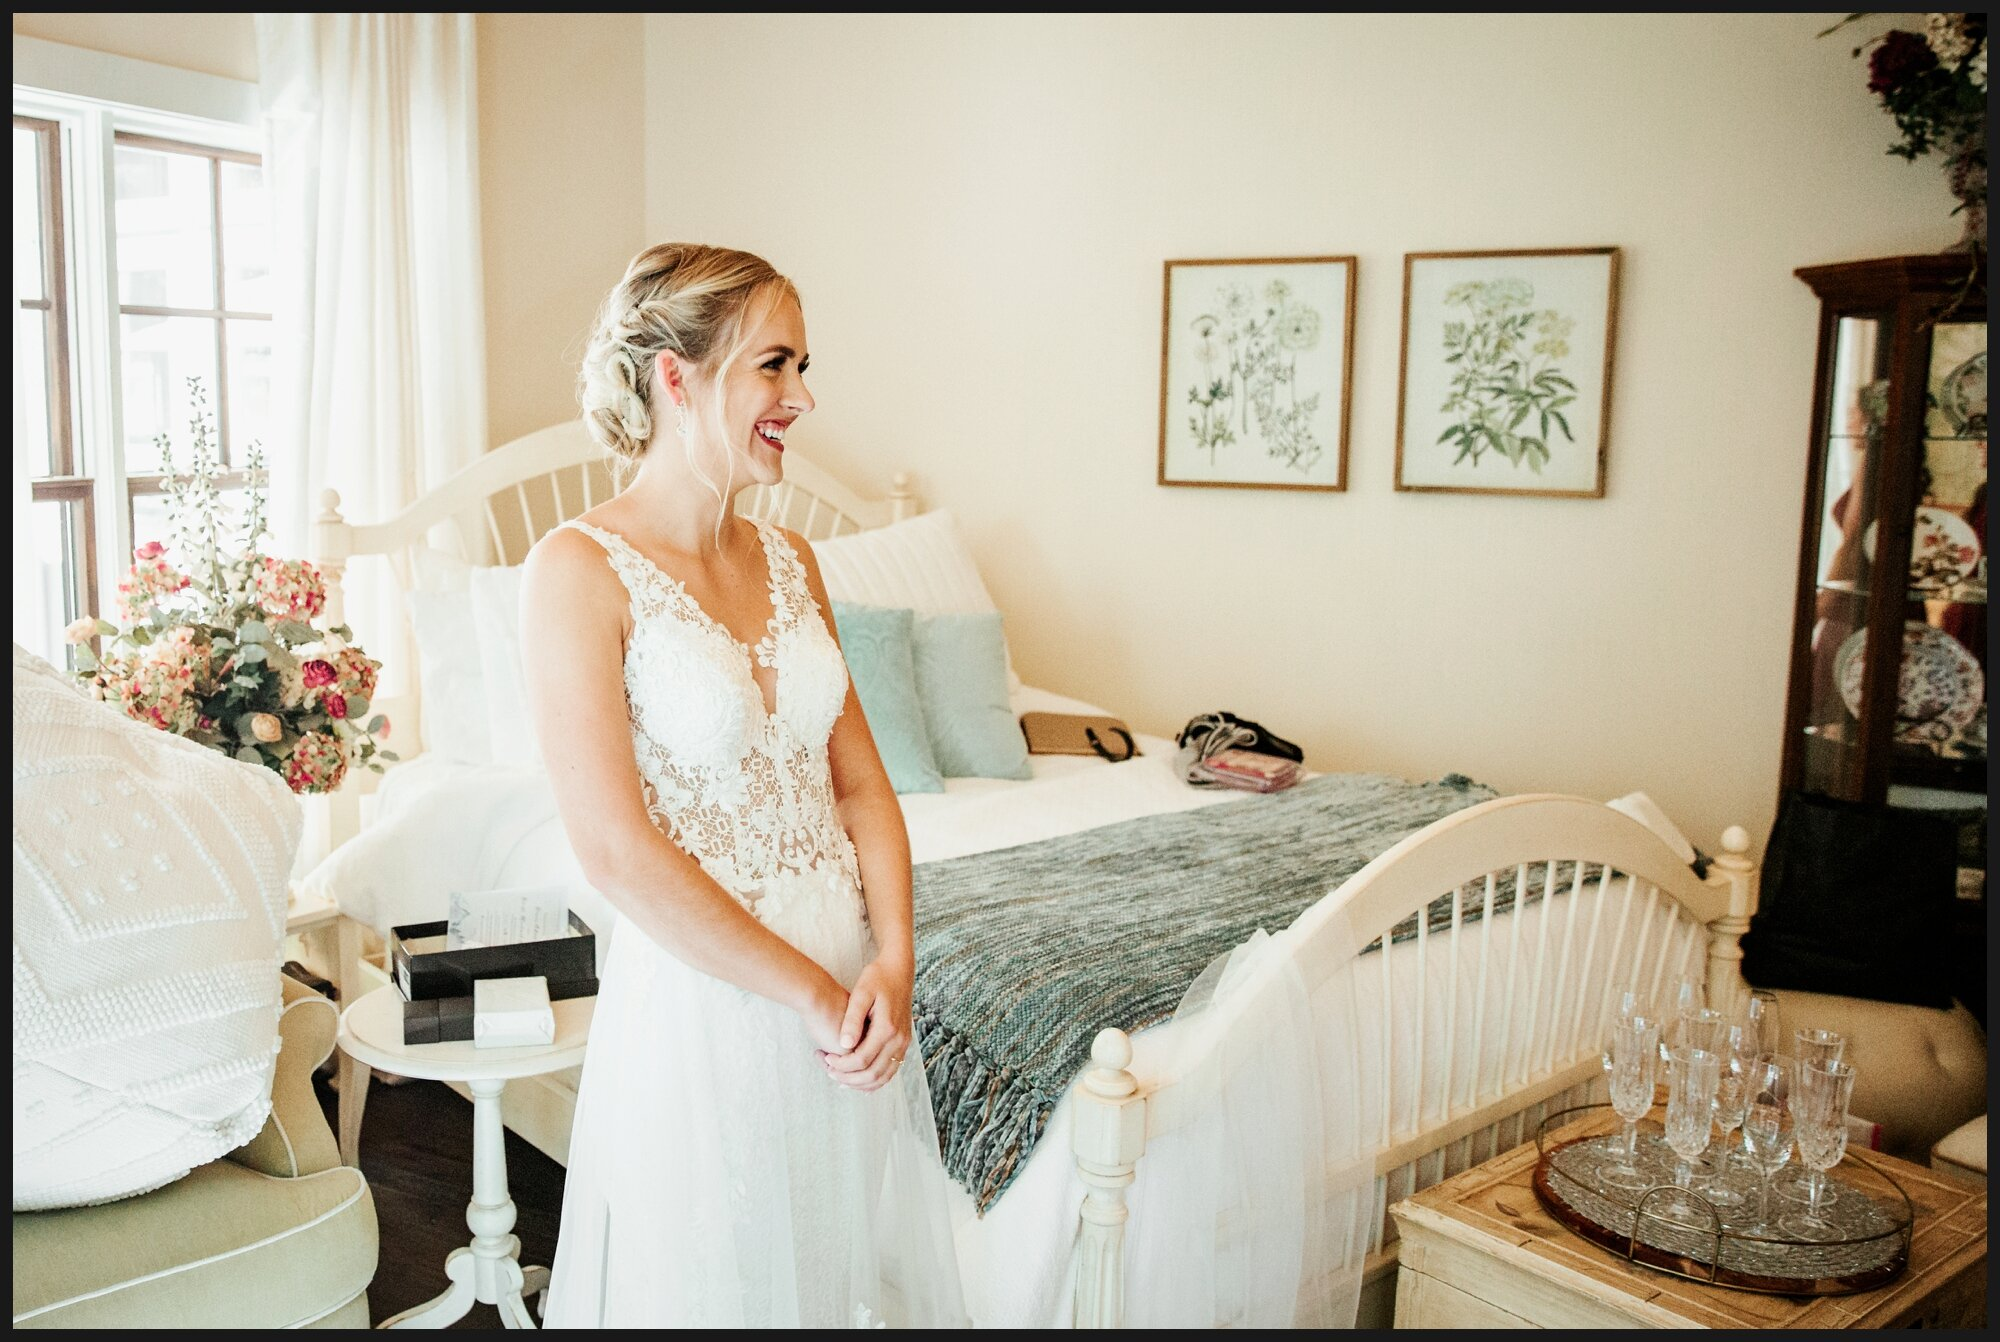 Orlando-Wedding-Photographer-destination-wedding-photographer-florida-wedding-photographer-hawaii-wedding-photographer_0796.jpg